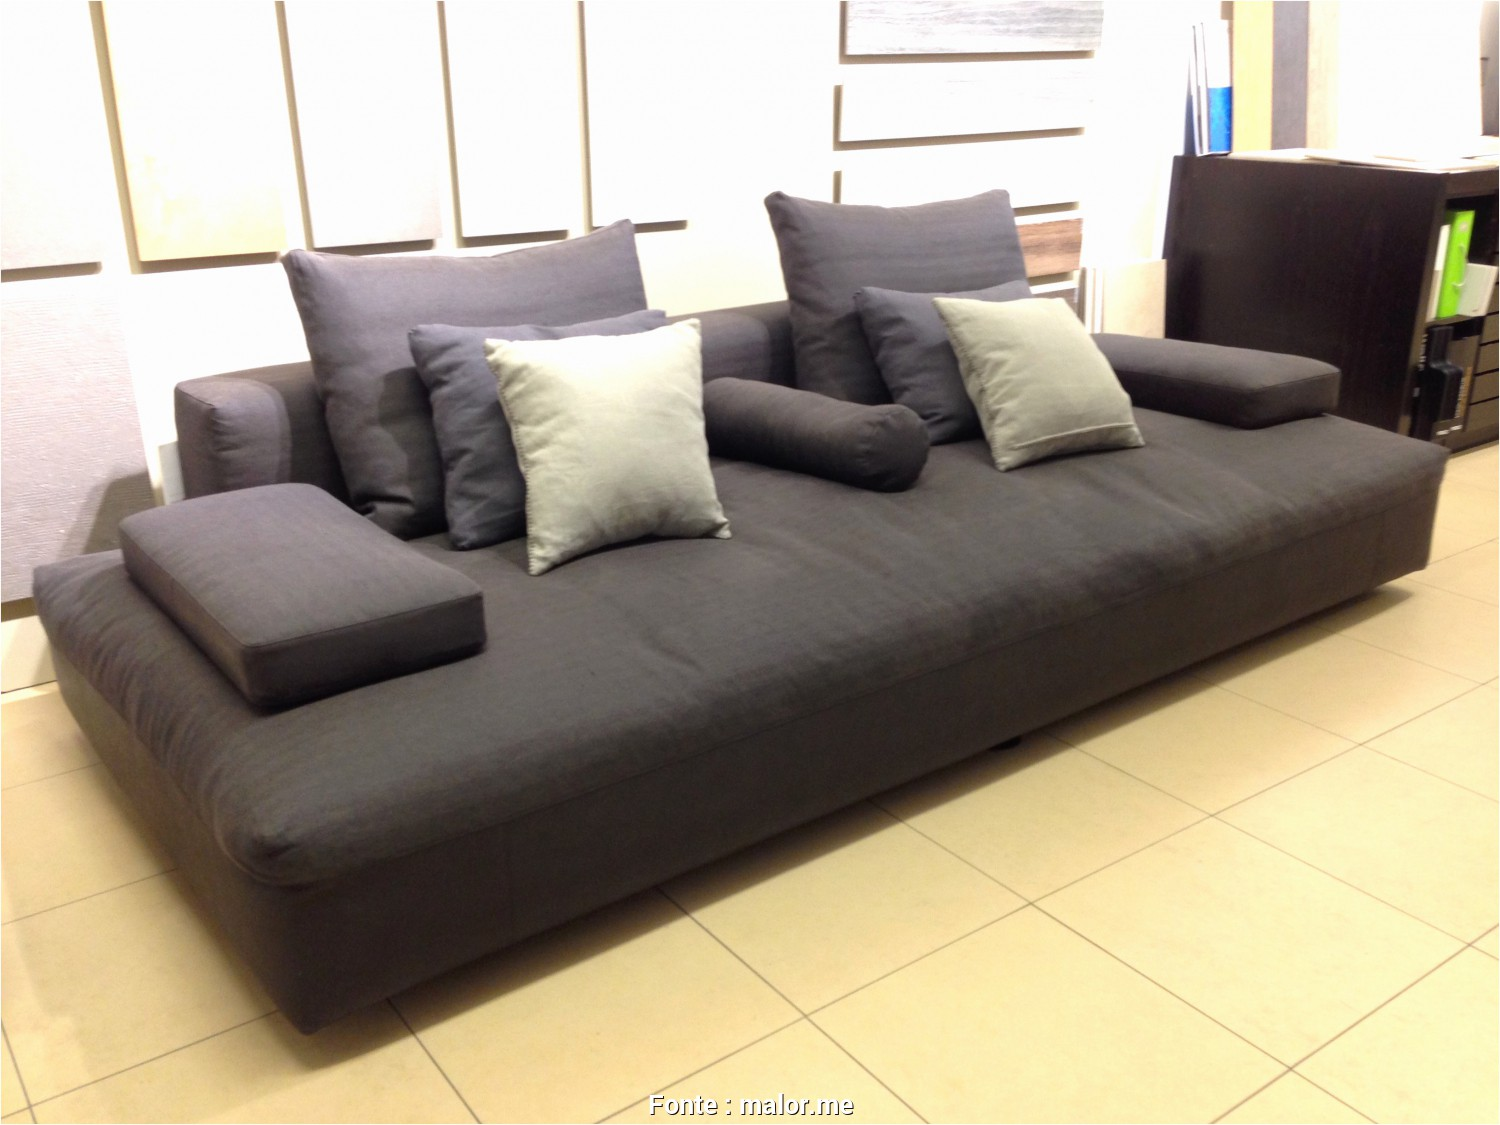 Divani Divani Outlet, Modesto Full Size Of Divani E Divani By Natuzzi Outlet Divani E Divani By Natuzzi Gallery Of